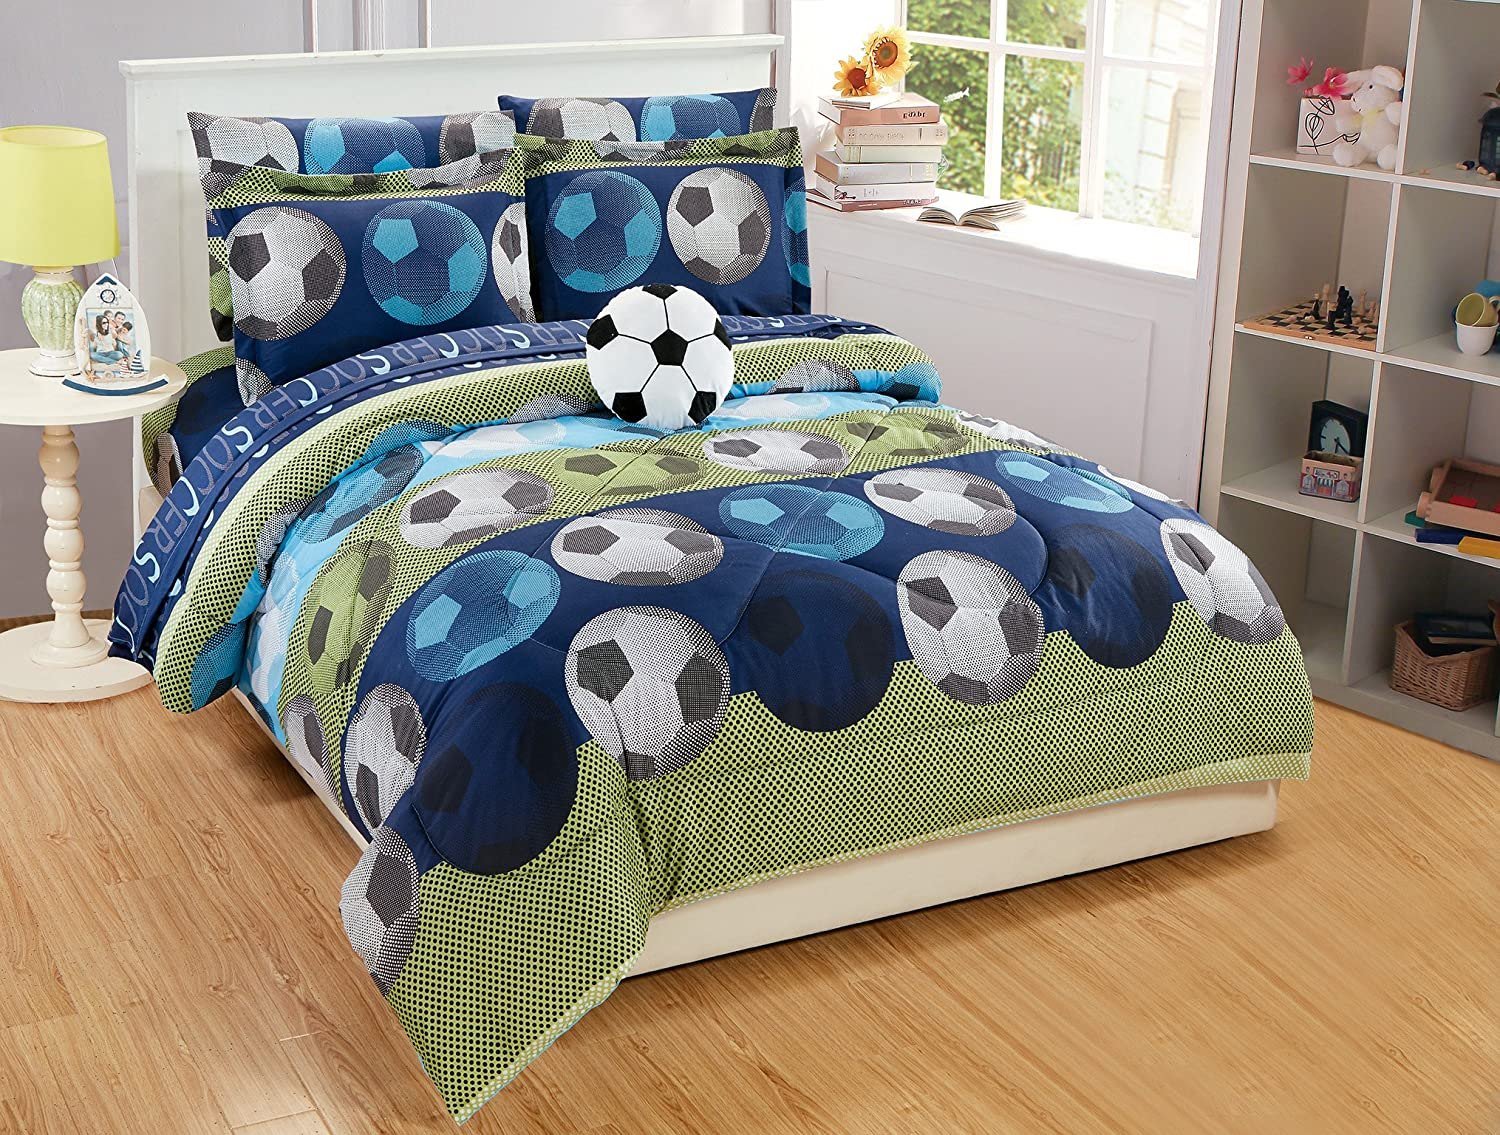 Mk Collection 6pc Twin Comforter Set With Furry Soccer Pillow Soccer Light Blue Green Navy Blue White Black New